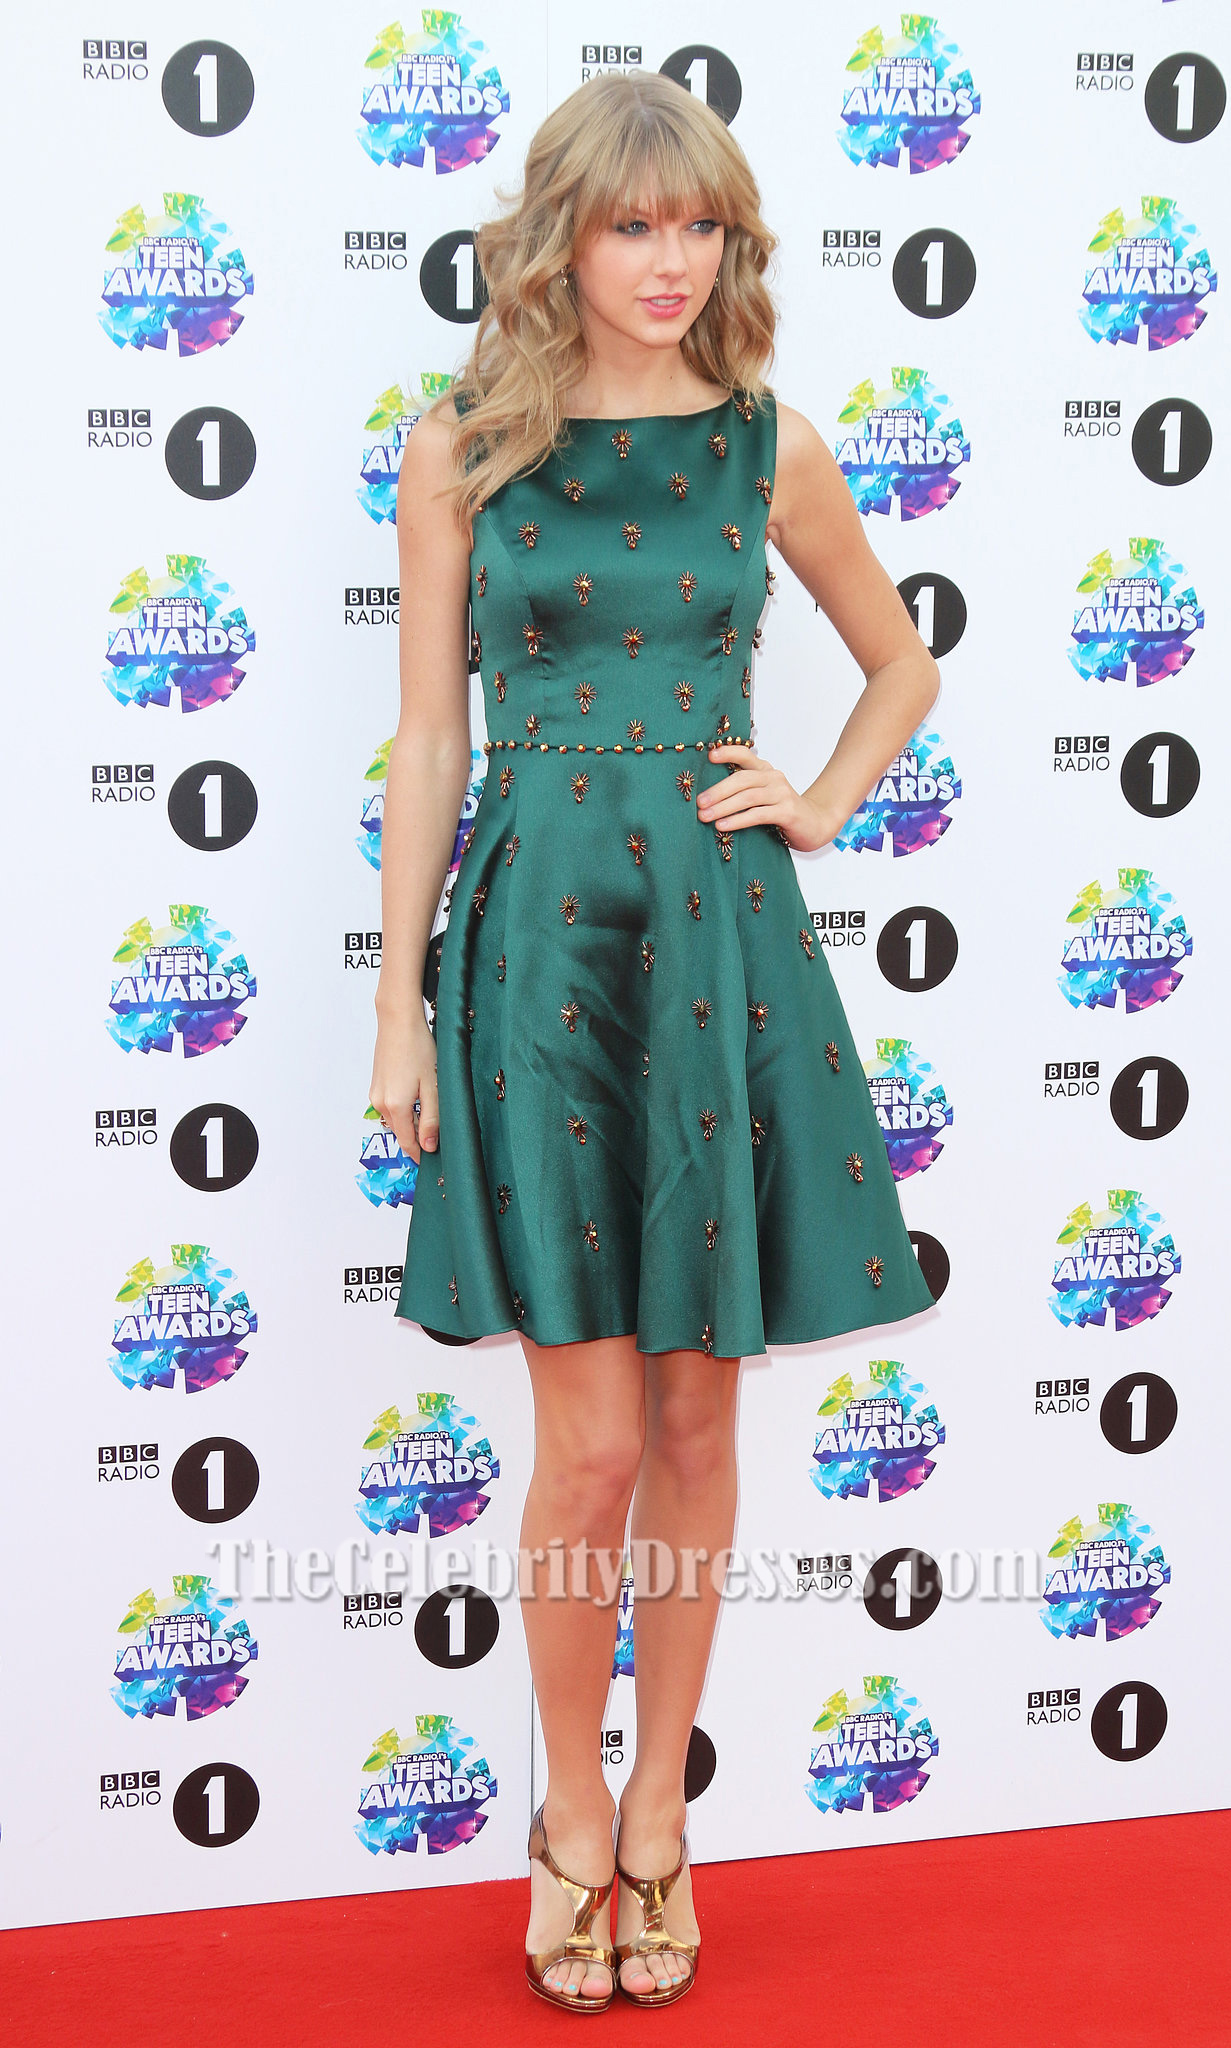 Taylor Swift Dark Green Beaded Cocktail Party Dress Teen Awards 2013 ...